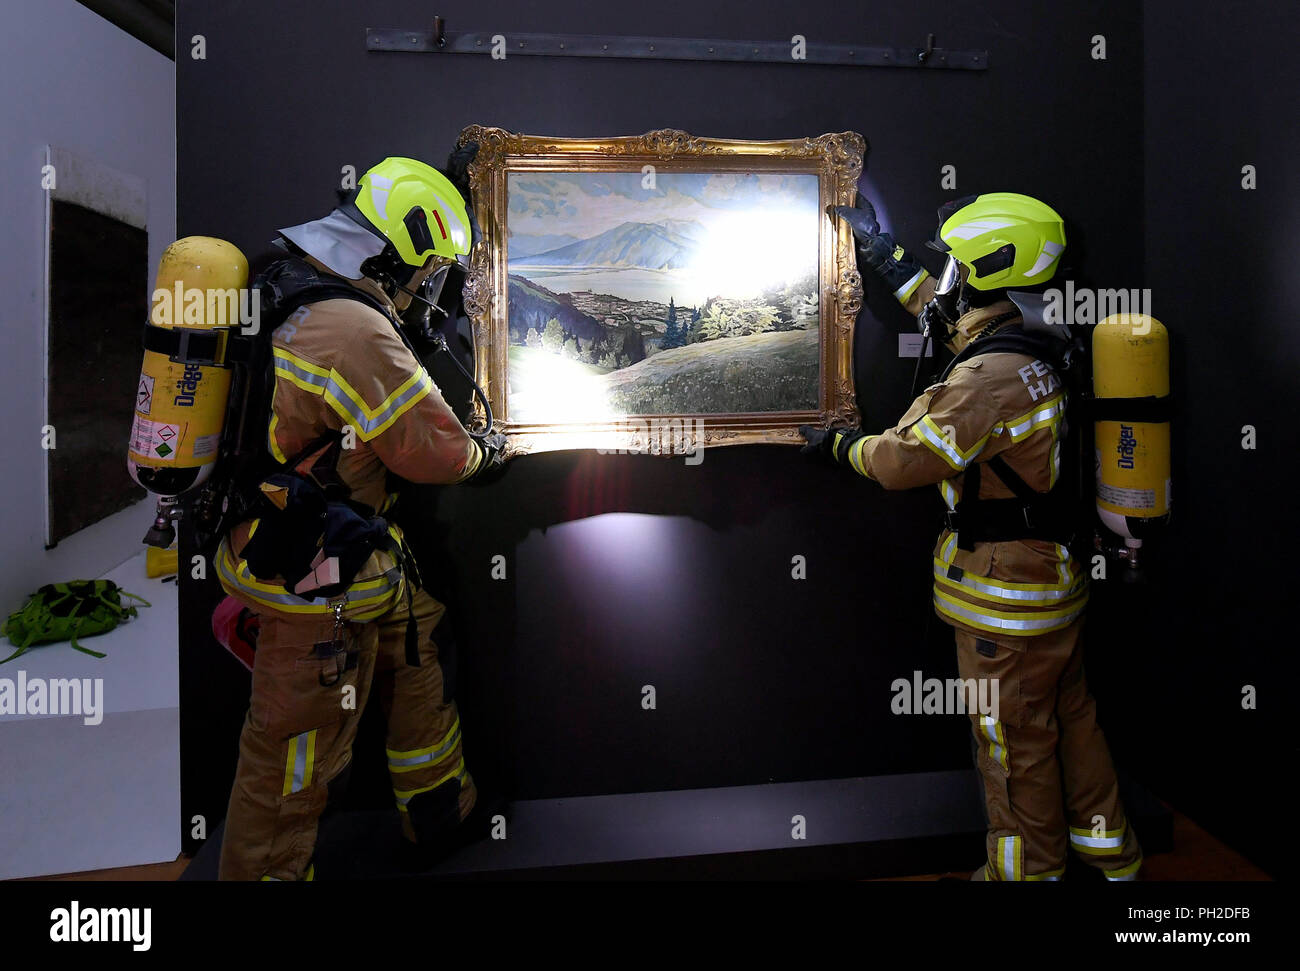 Hanover, Germany. 29th Aug, 2018. 29.08.2018, Lower Saxony, Hanover: Firefighters salvage a painting during an emergency exercise in an exhibition room in the State Museum. A group of fire brigades is testing the emergency in the state museum in the capital of Lower Saxony. In the event of a possible fire catastrophe, an emergency plan is put in place to save people and cultural assets. Credit: Holger Hollemann/dpa/Alamy Live News - Stock Image